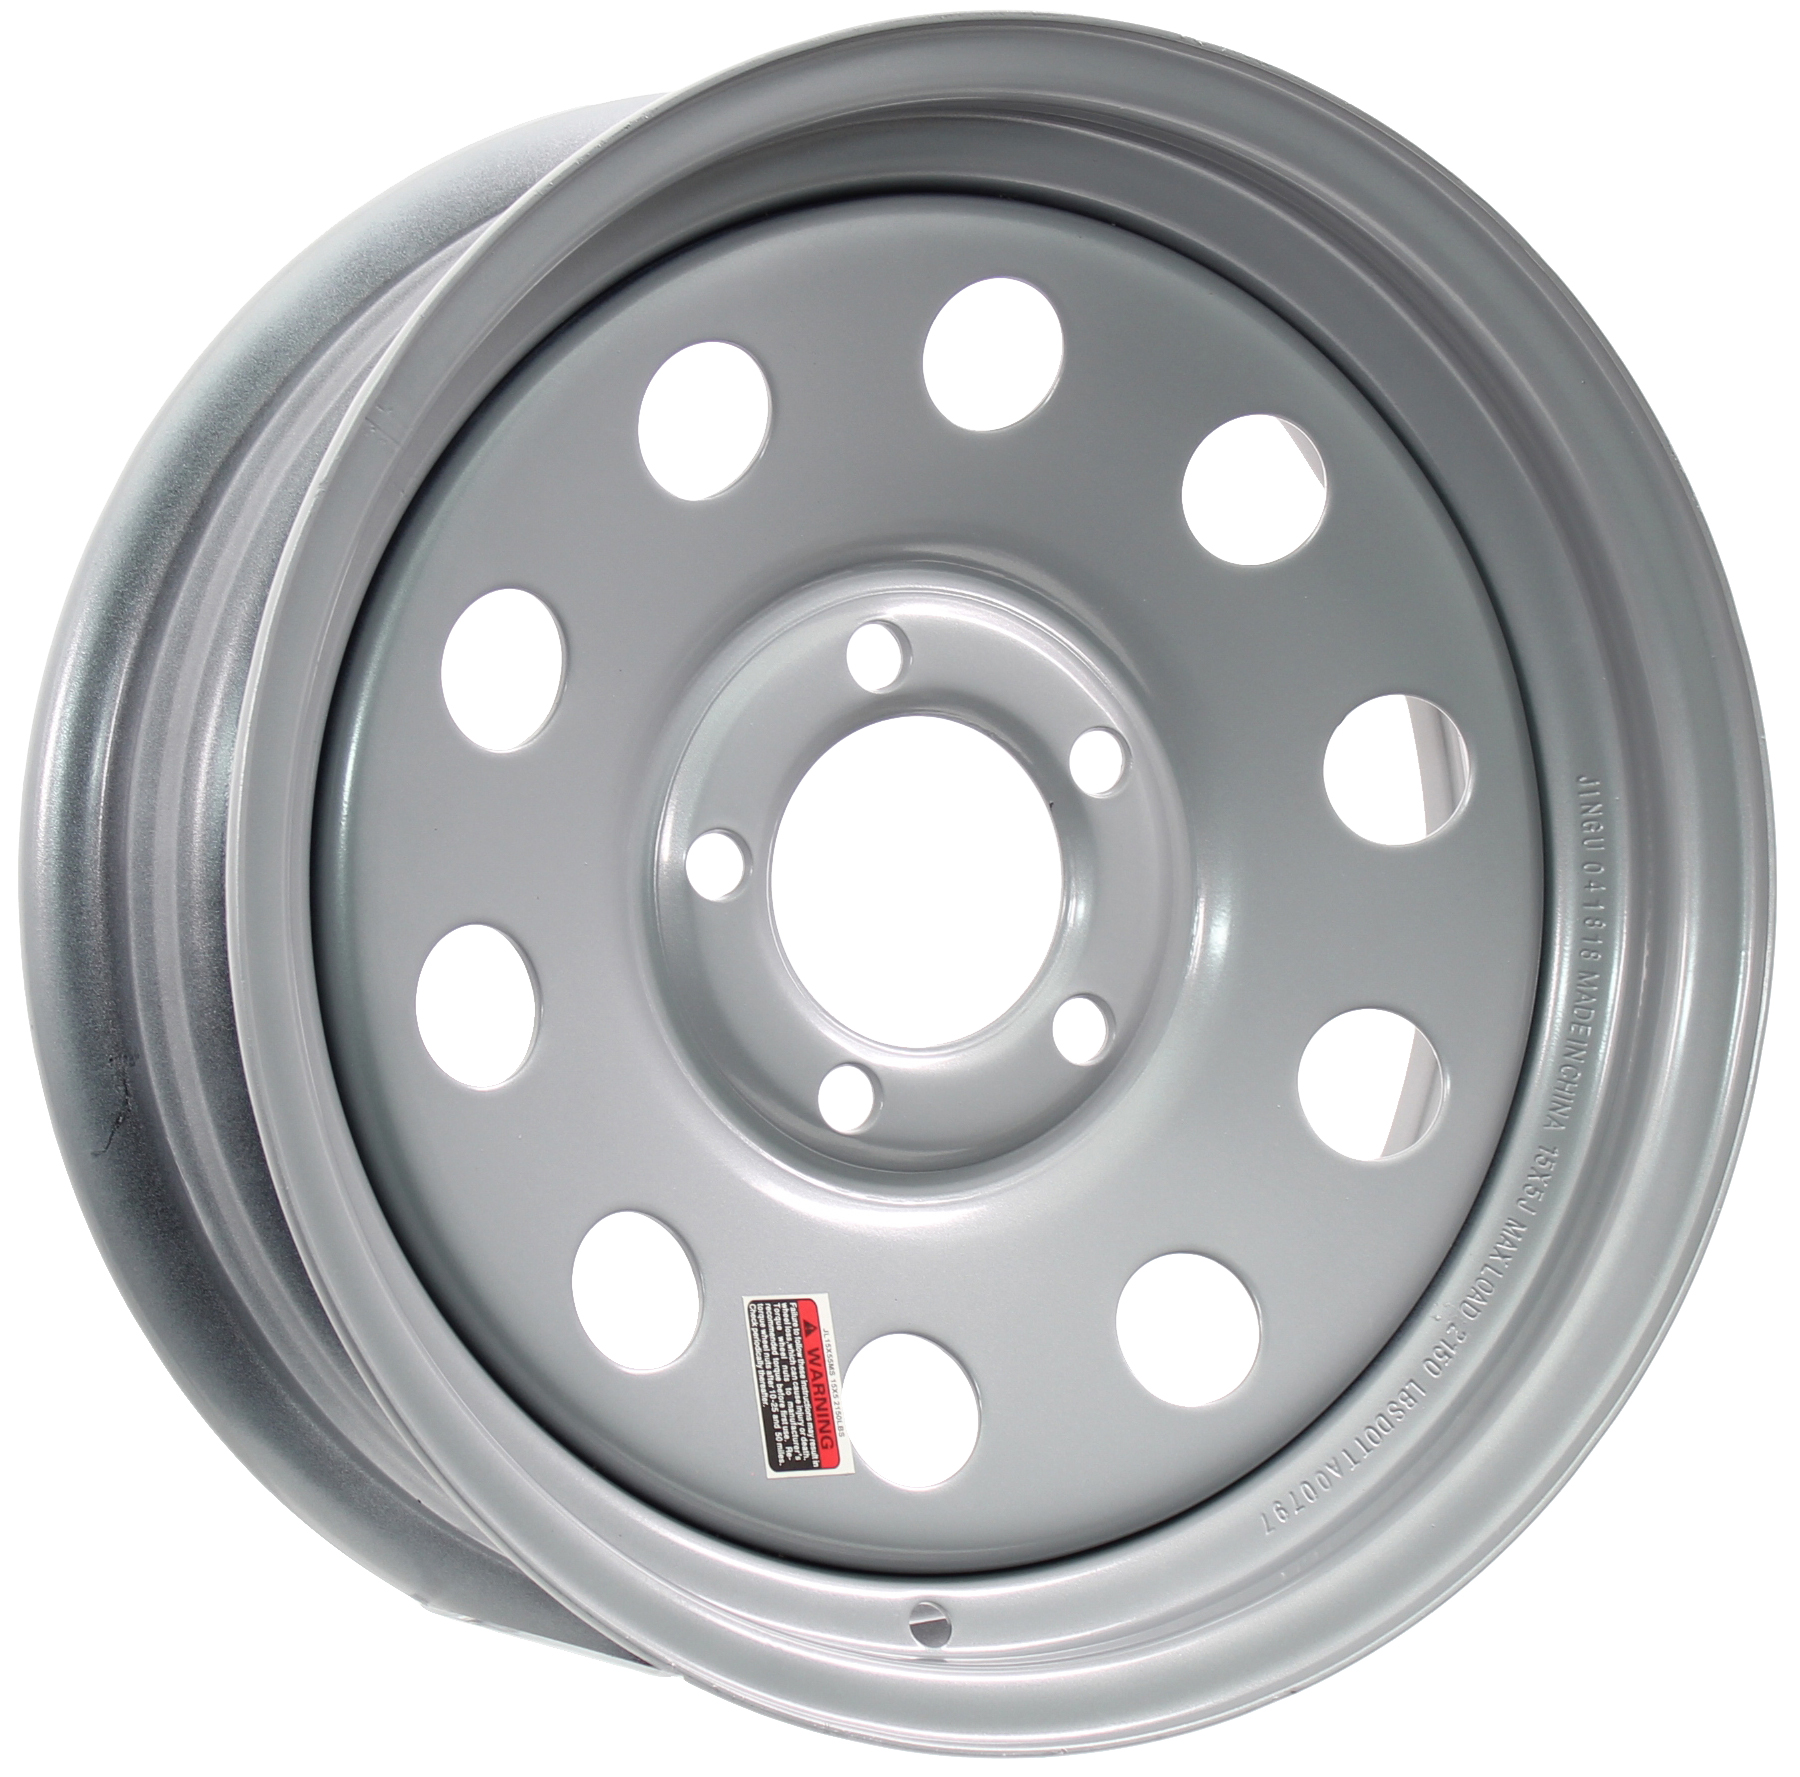 15x5 5-4.5 Silver Mod Steel Trailer Wheel Image